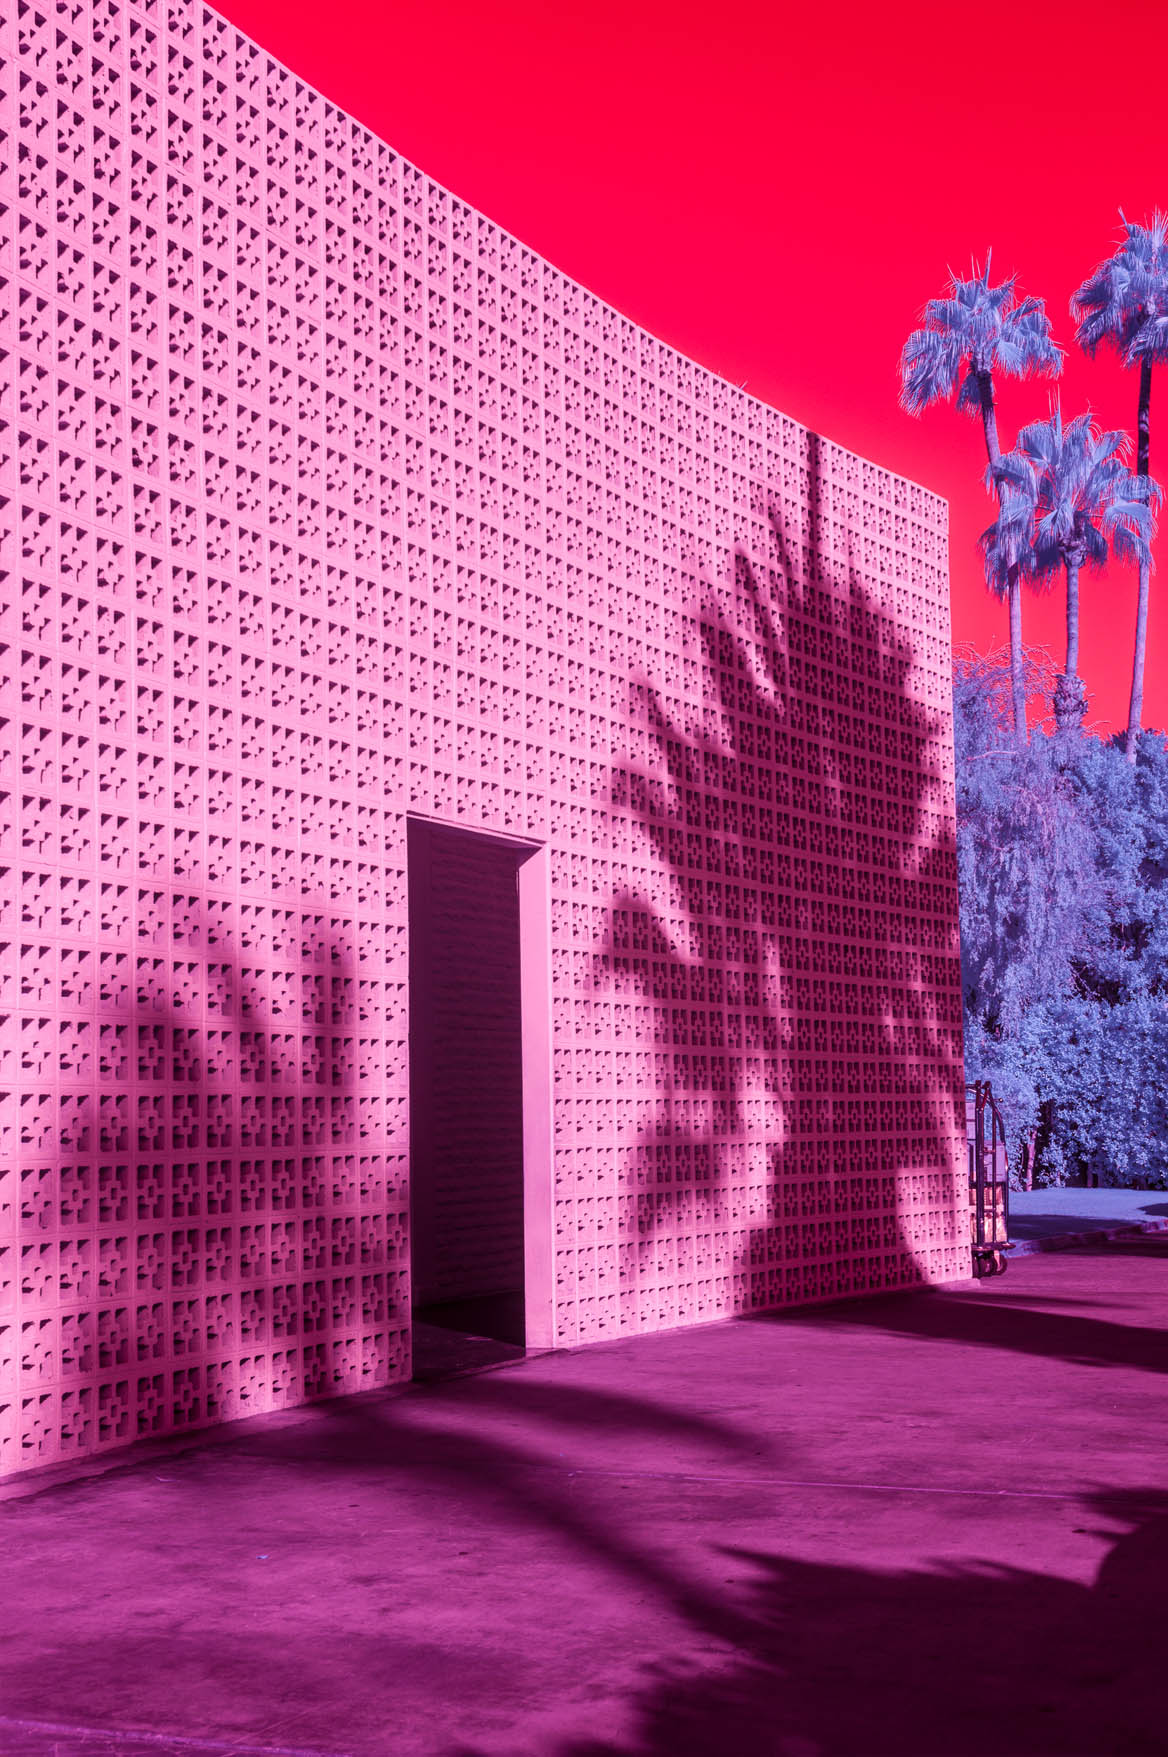 Infrared photograph of the façade of The Parker hotel in Palm Springs